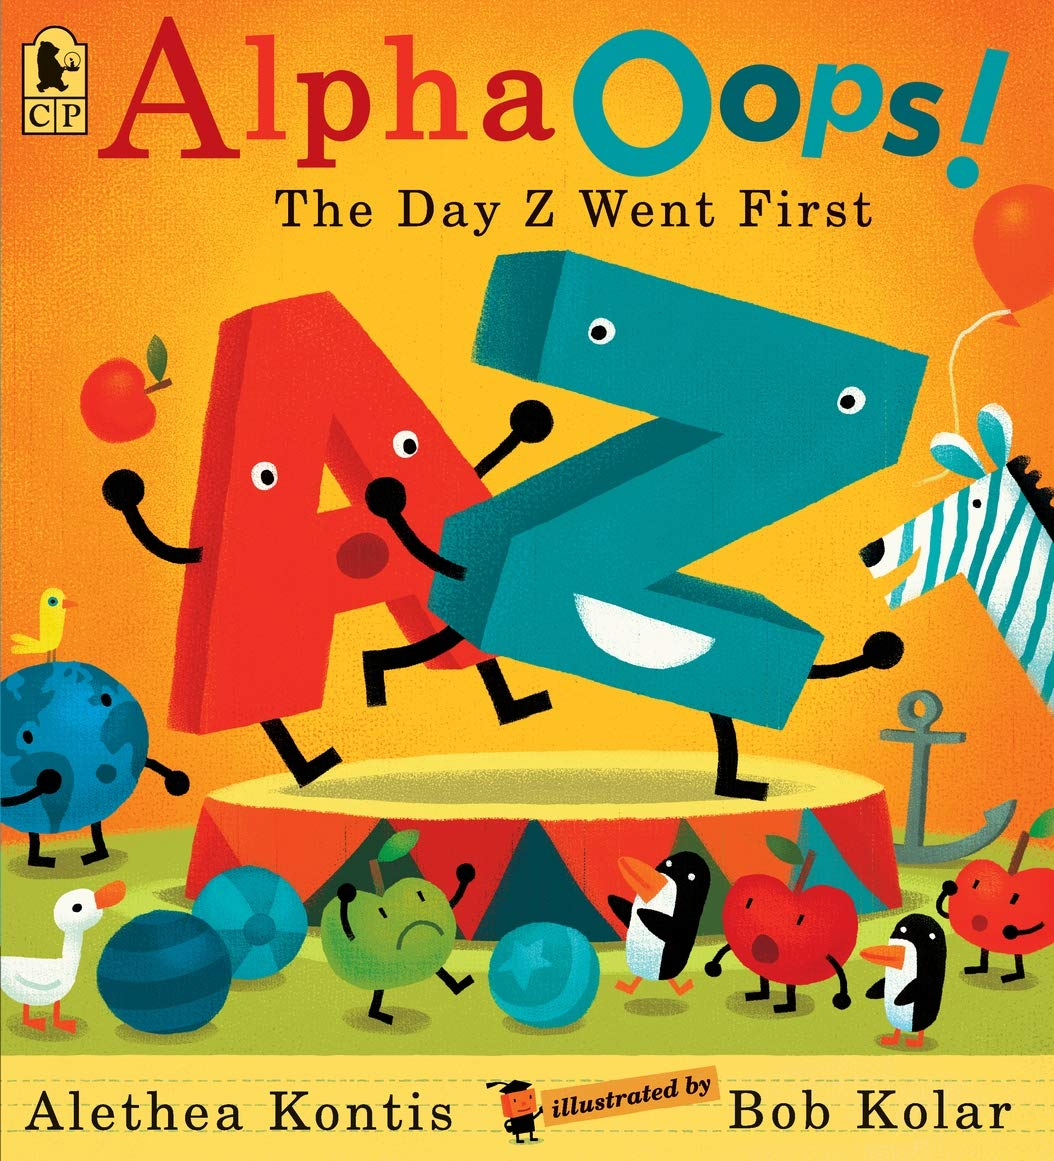 The Best ABC Picture Books - Alpha Oops The Day Z Went First.jpg